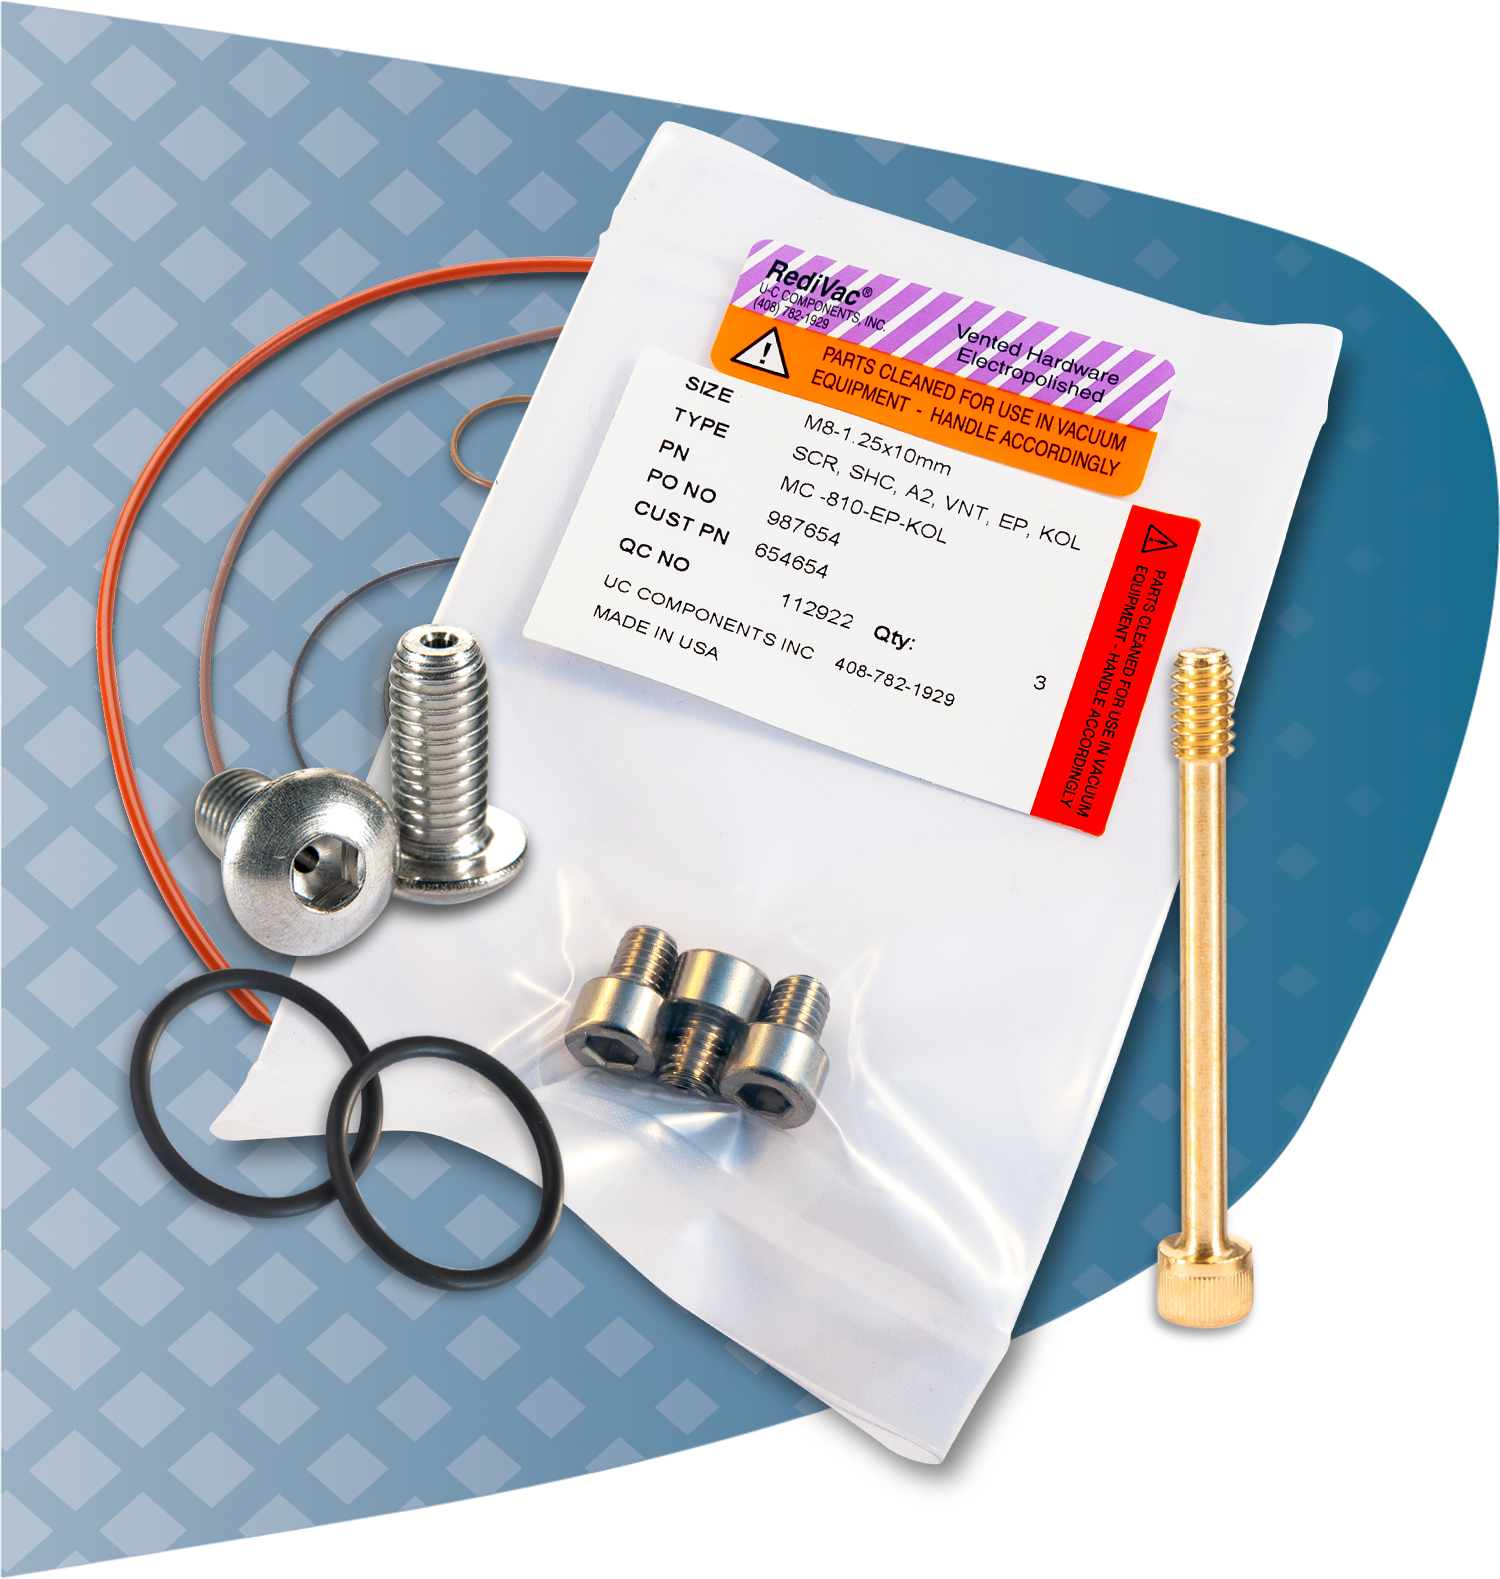 UC RediVac® fasteners and o-rings